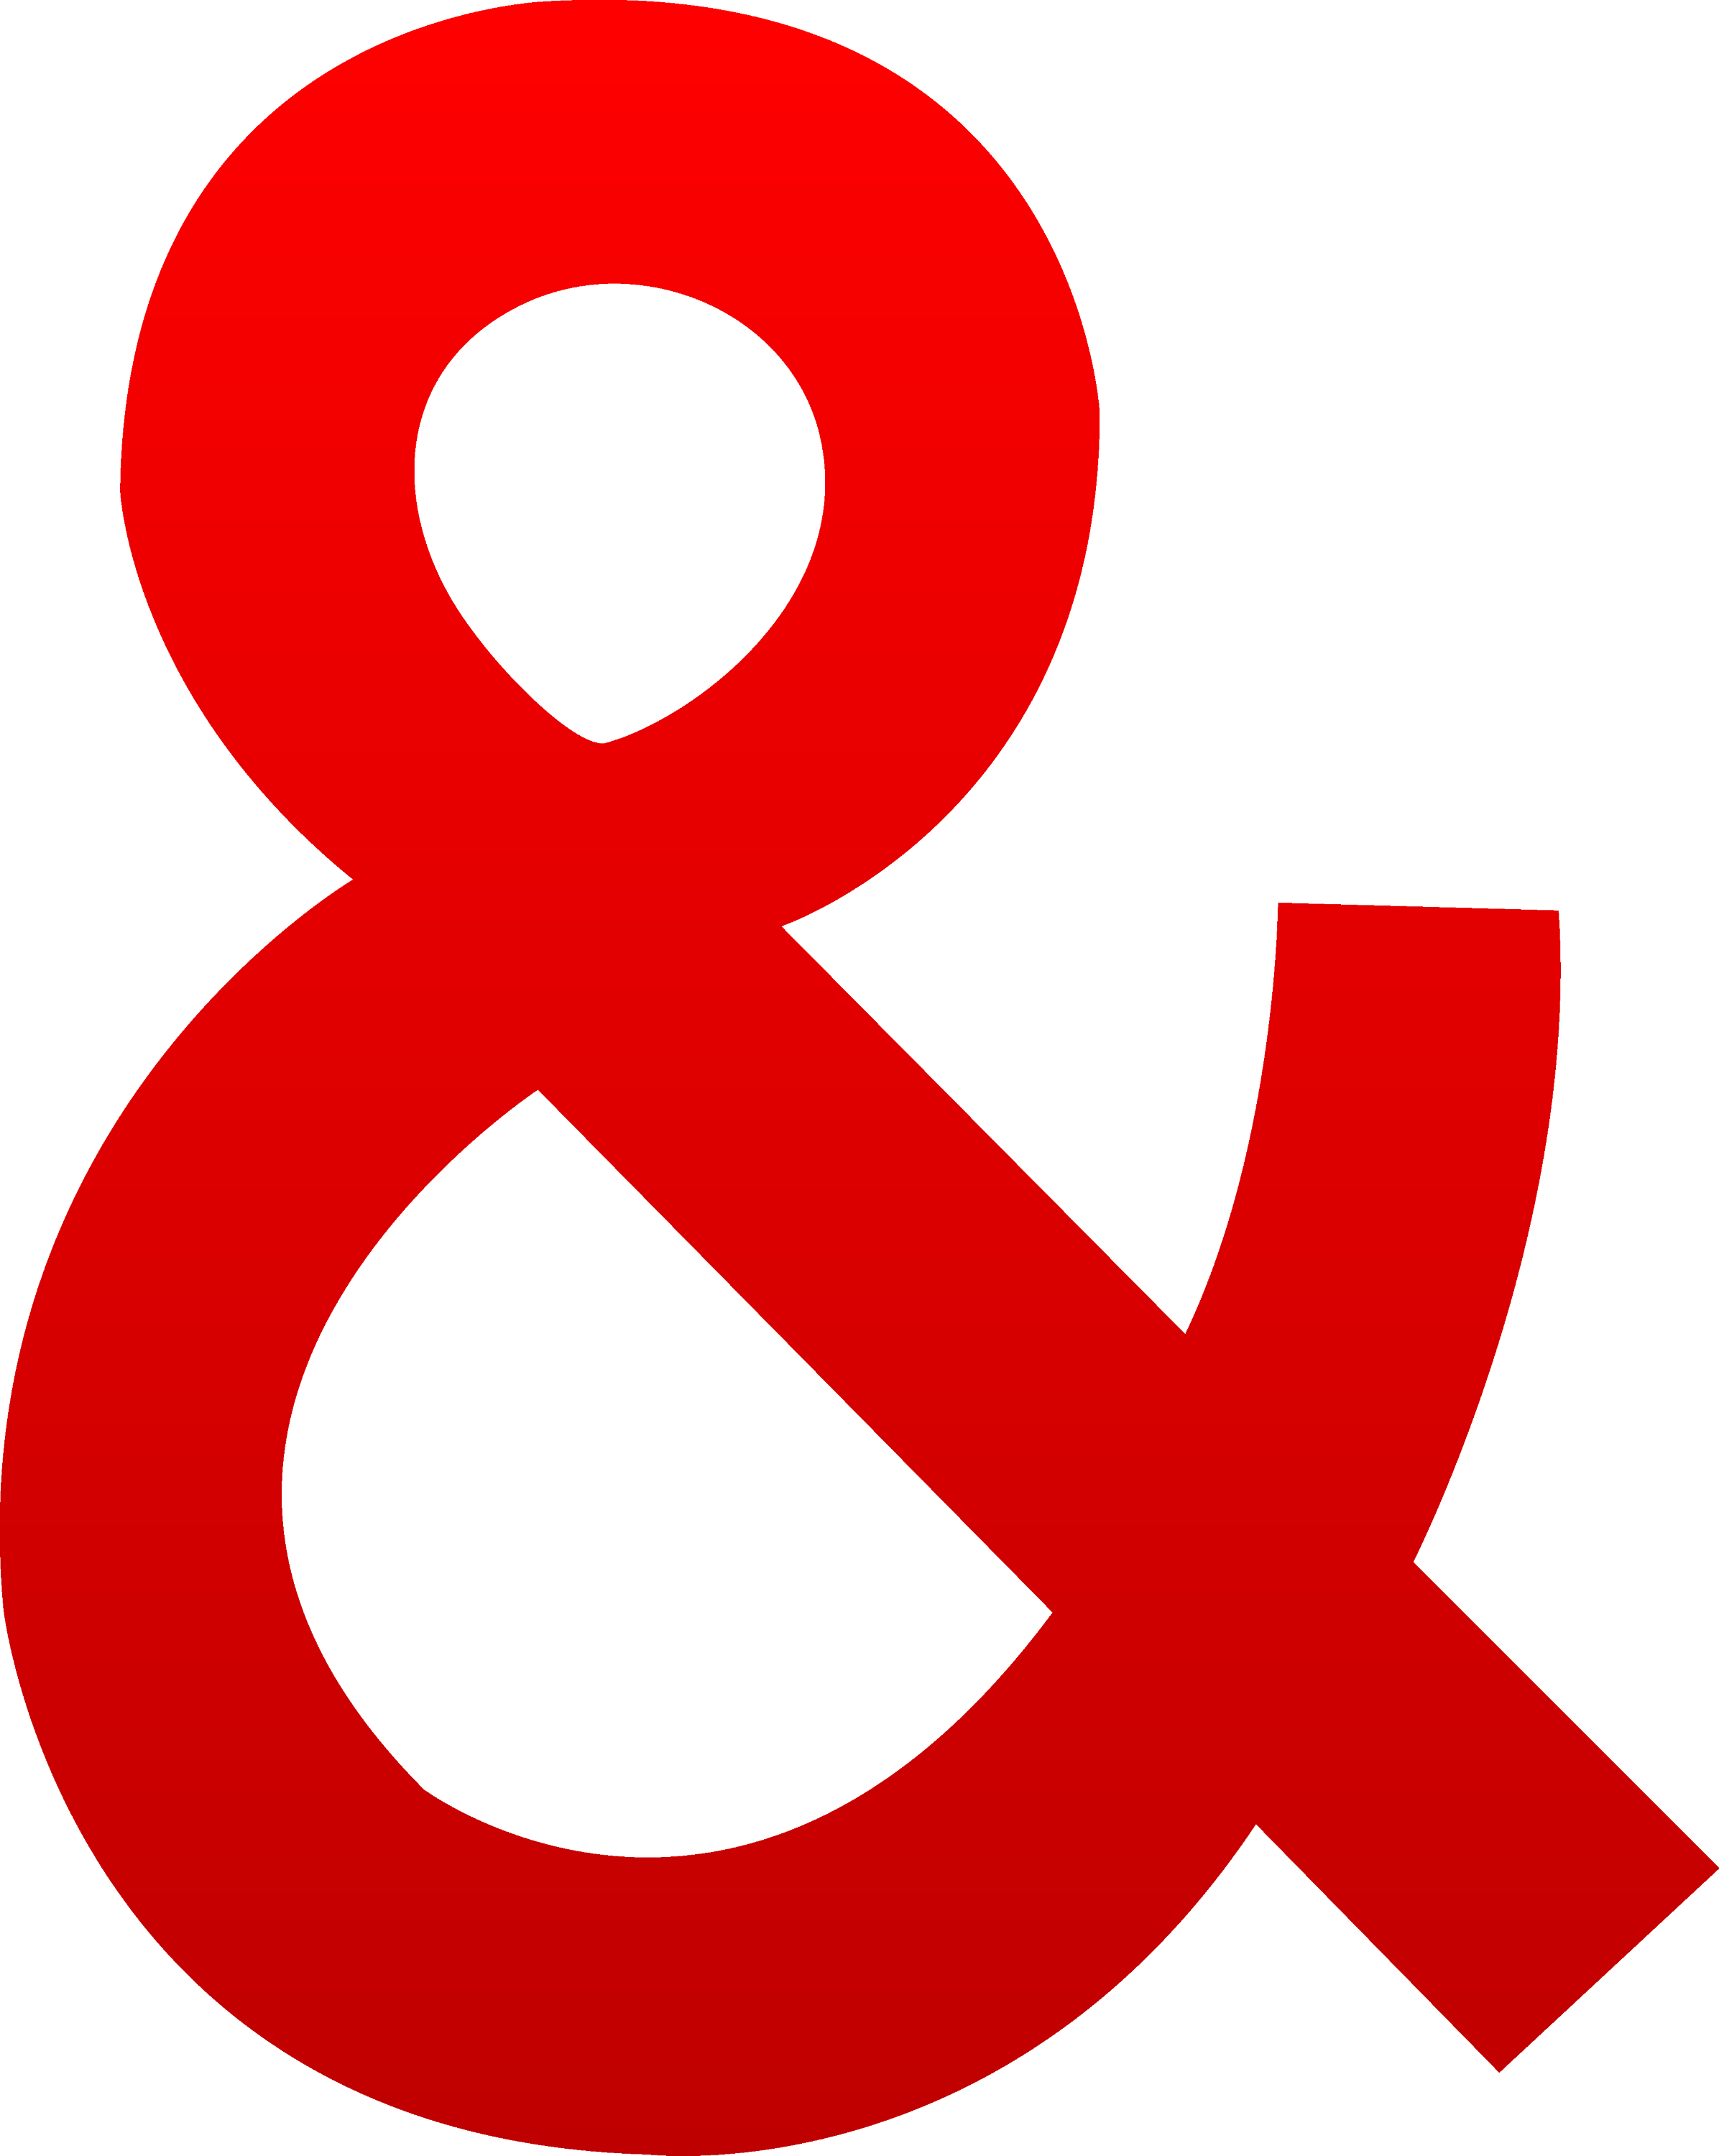 red ampersand symbol free clip art rh sweetclipart com symbol clipart black and white music symbol clipart